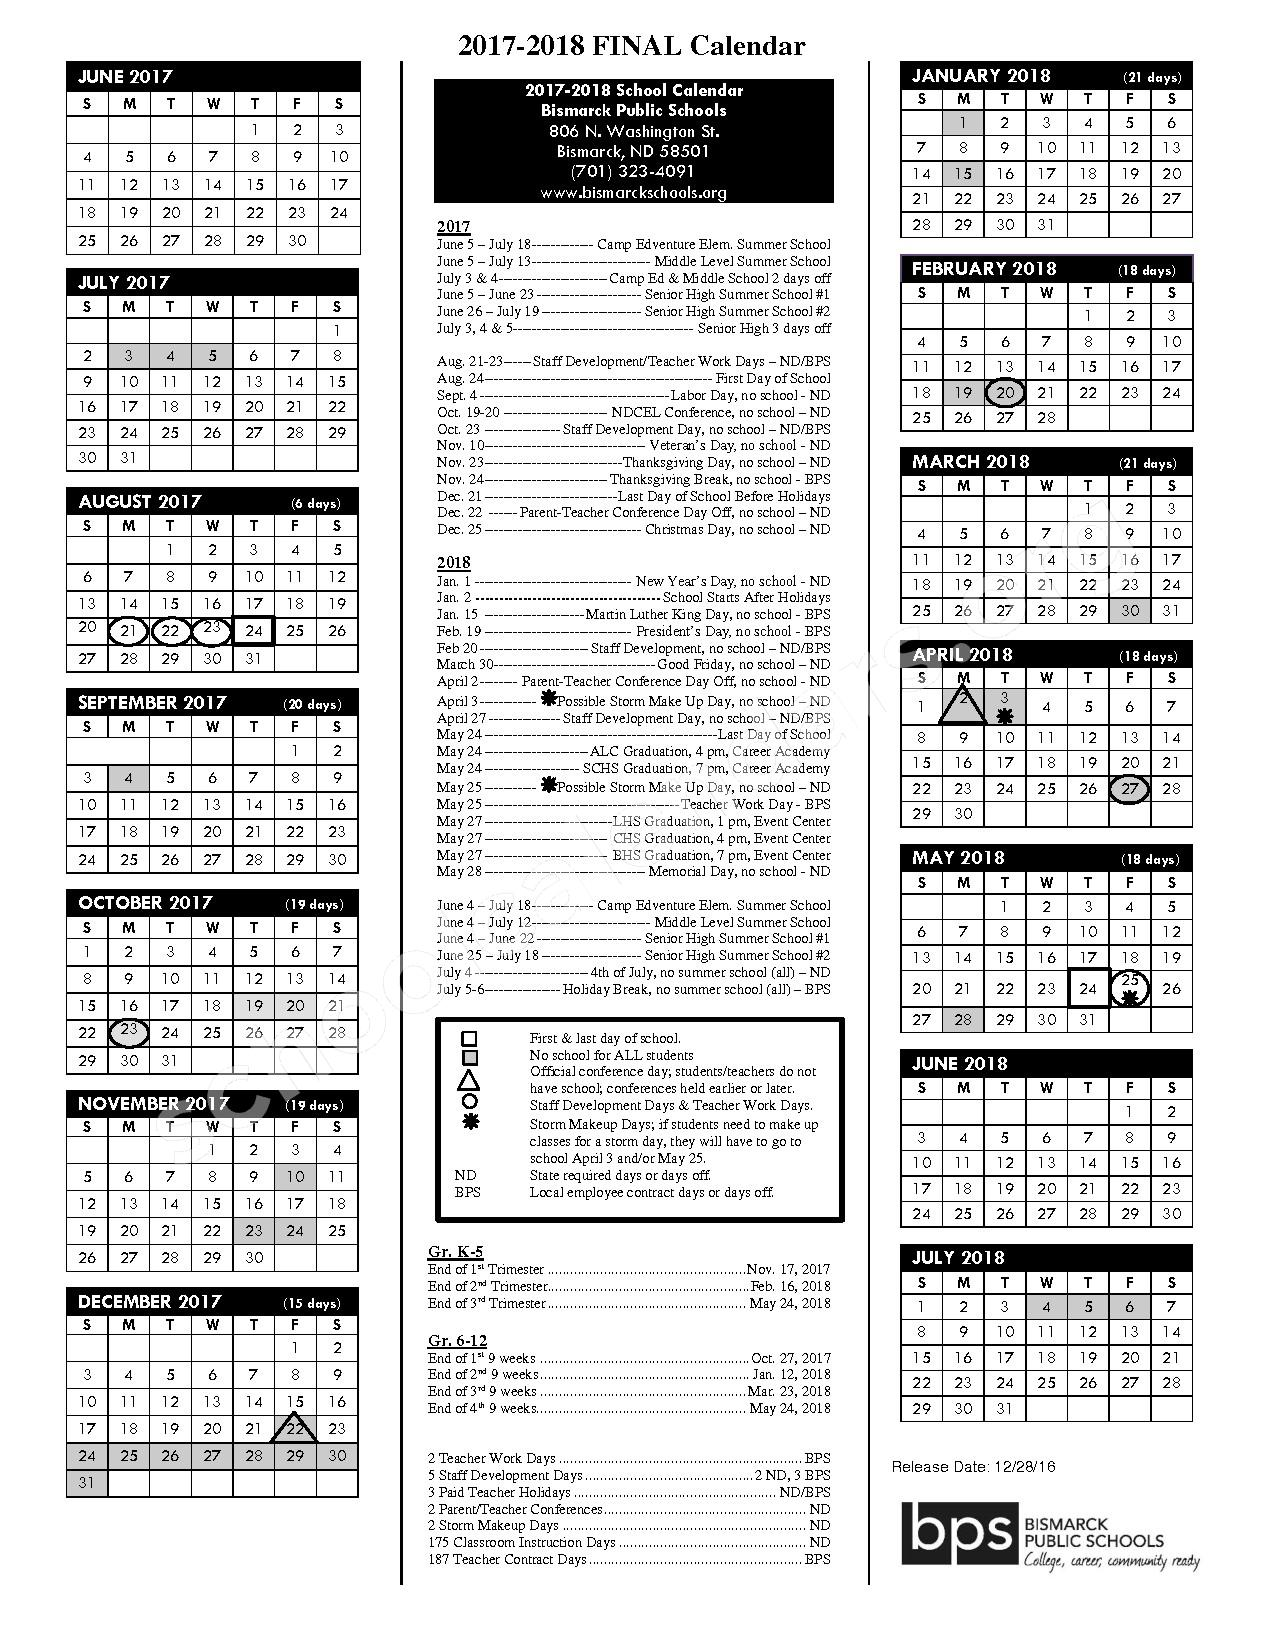 2017 - 2018 school calendar – Bismarck High School – page 1